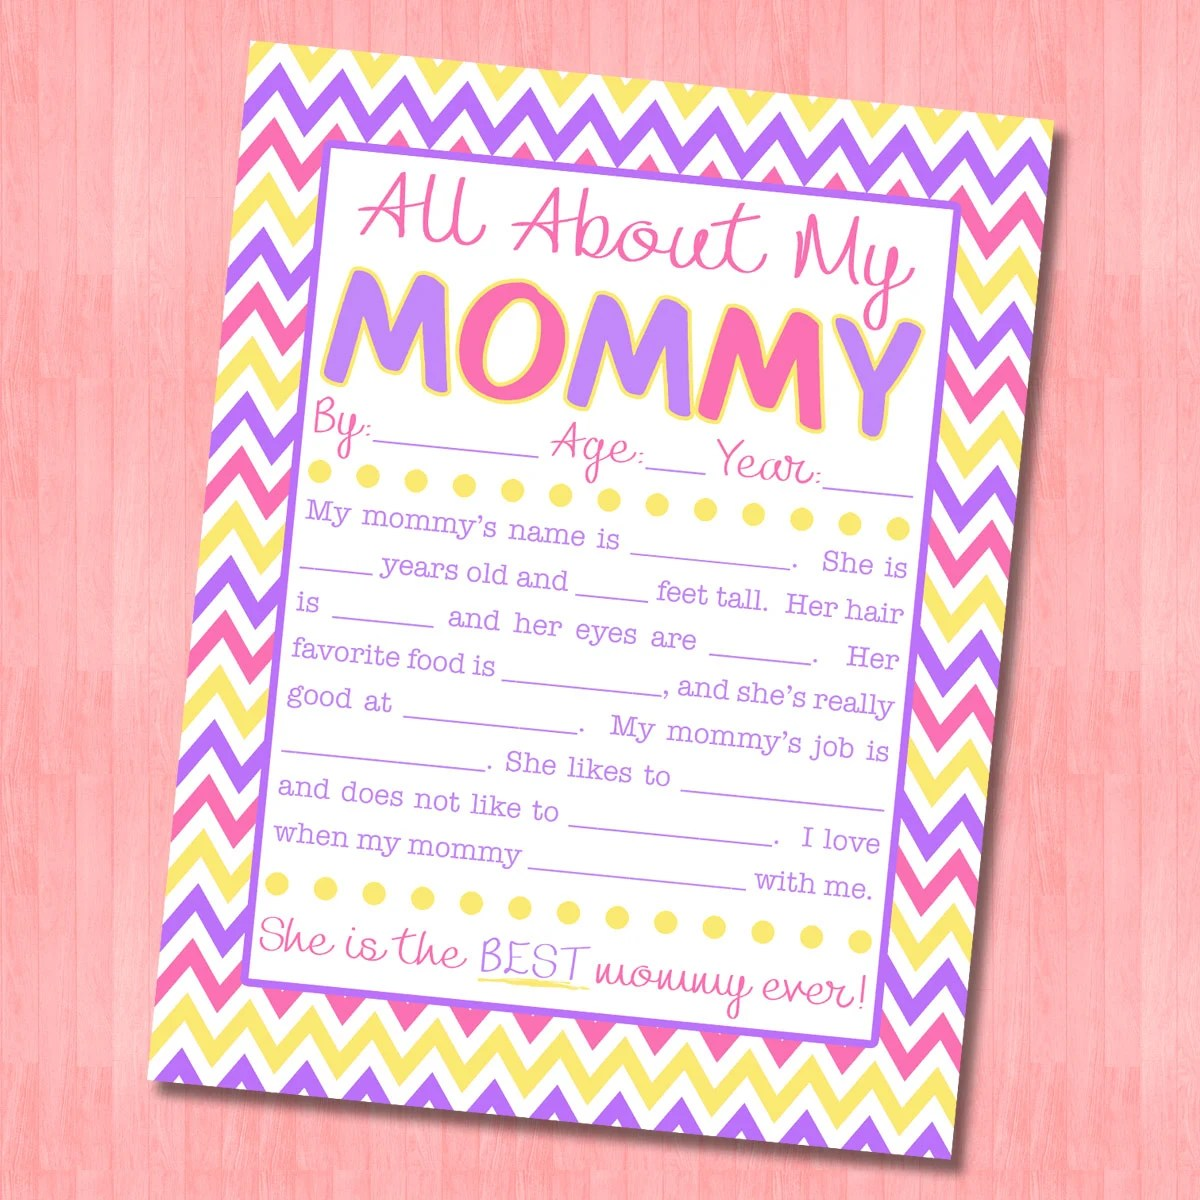 graphic relating to All About My Mom Printable referred to as All Pertaining to My Mommy Job interview with Absolutely free Printable!